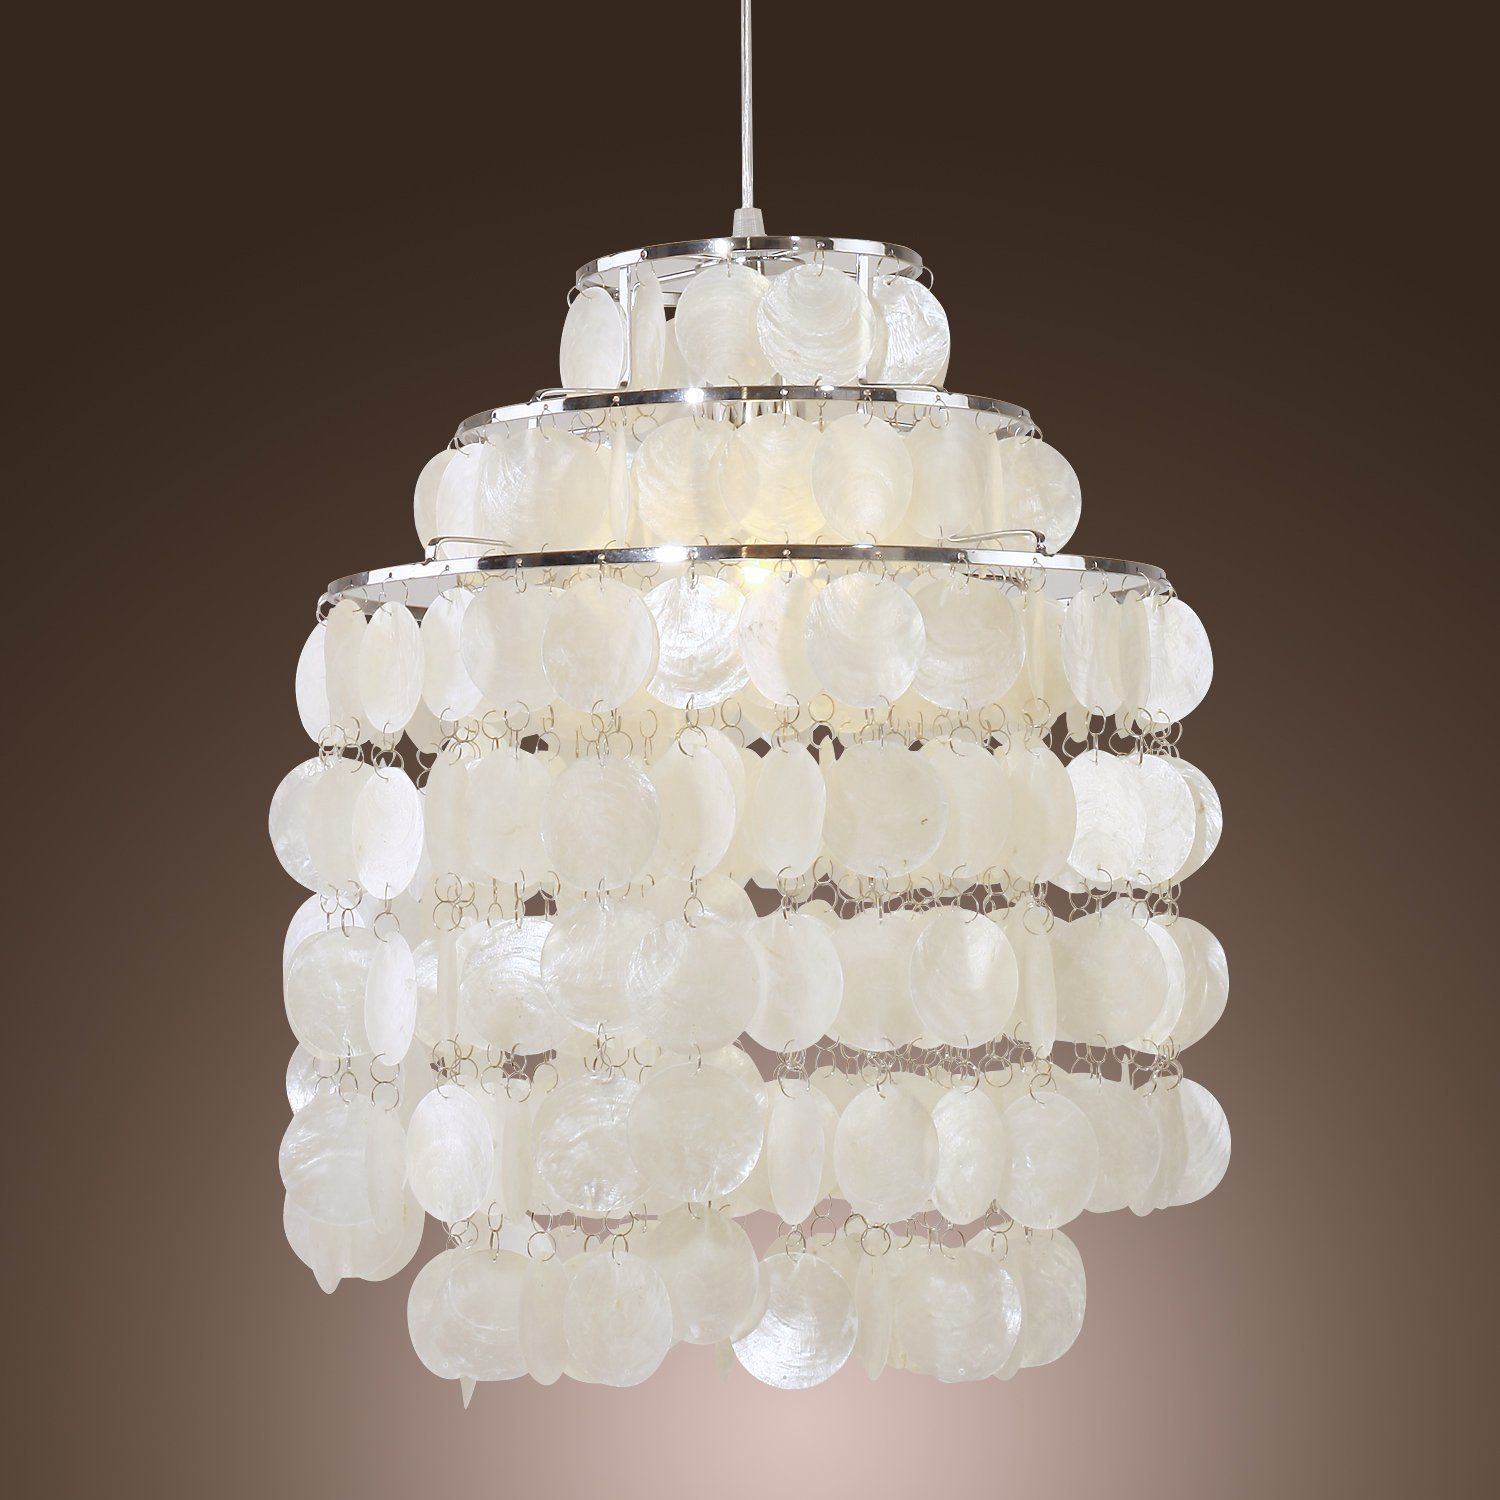 lamp ouku white shell pendant chandelier e26 for bedroom living